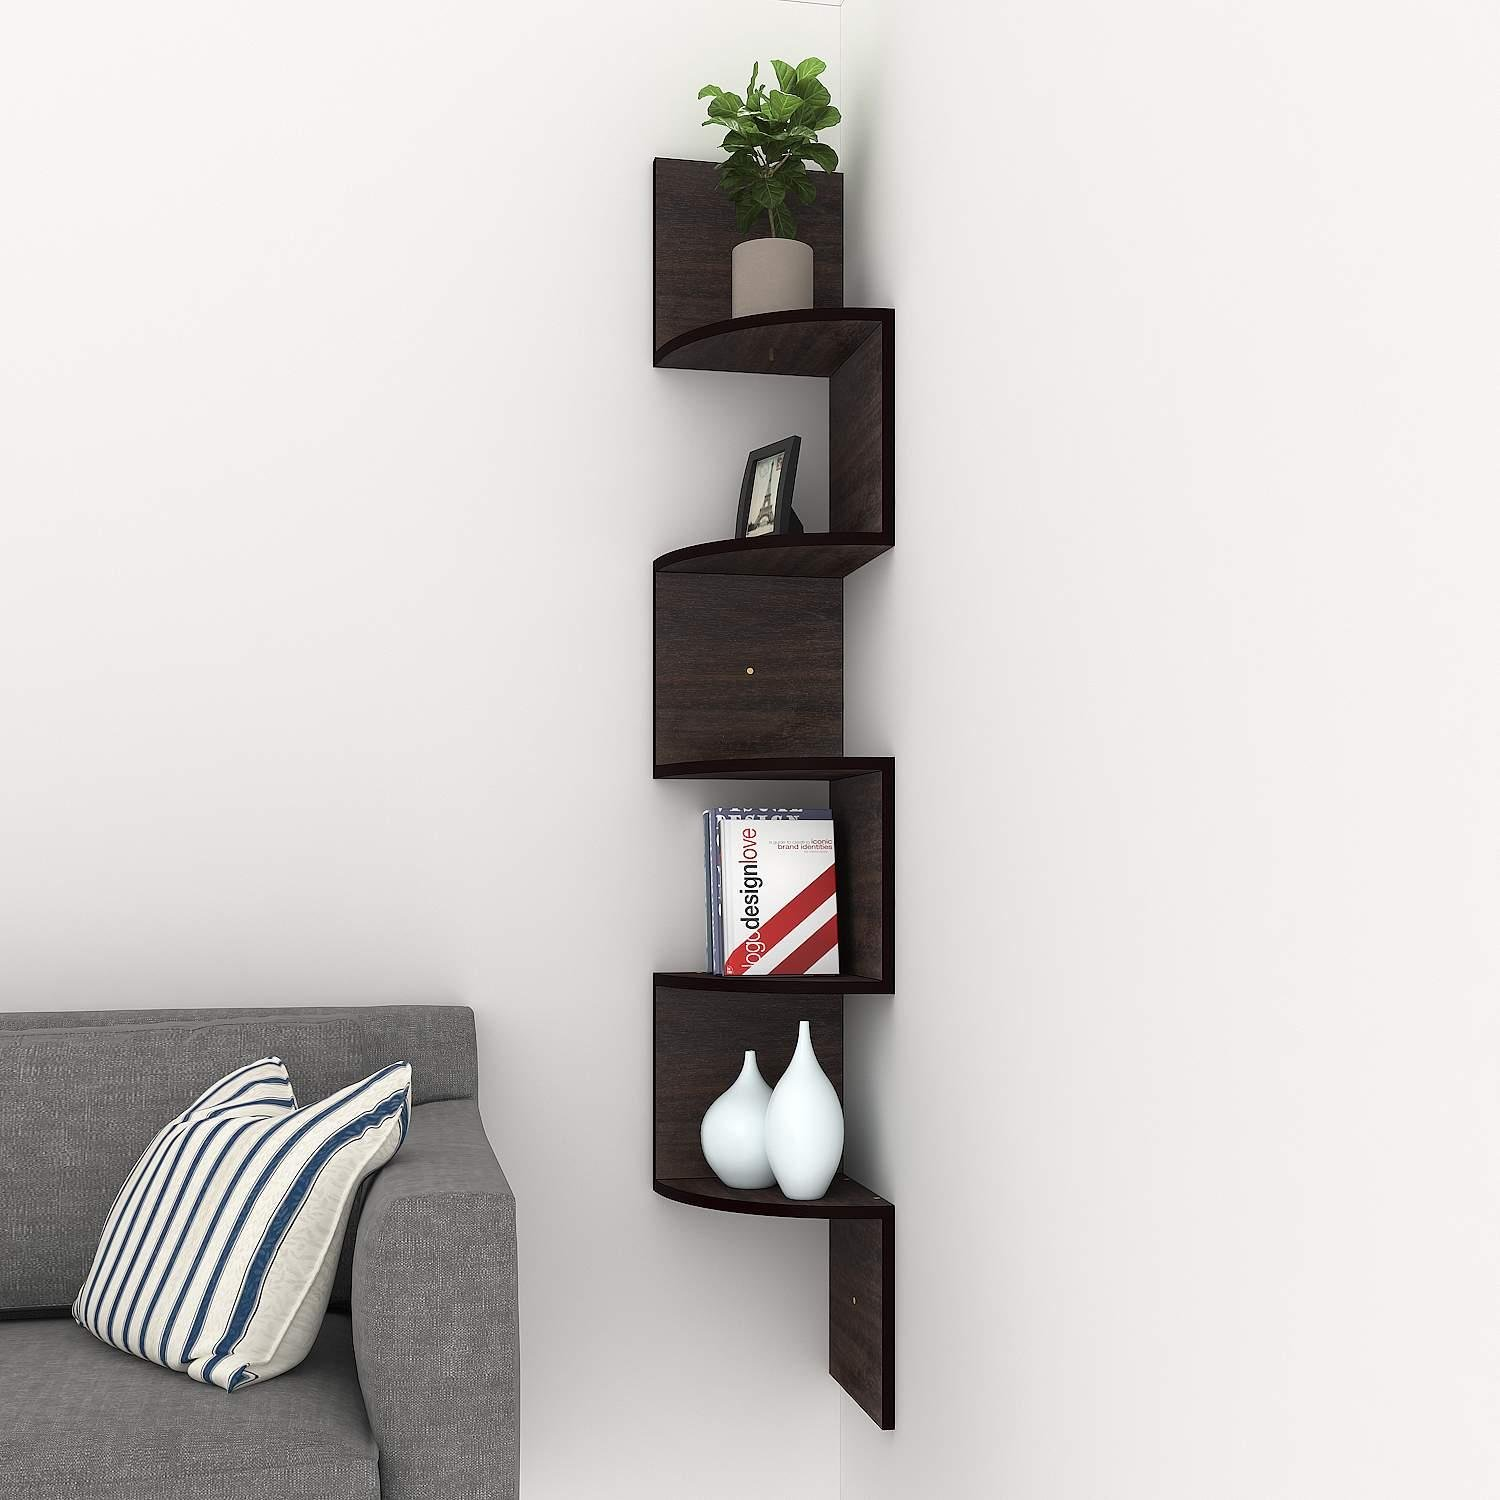 corner floating shelves modern tier uzgtyrgl black brown mount home decor display shelf kitchen ikea besta foot fireplace mantel hanging wood cubby storage bookcase white diy wall